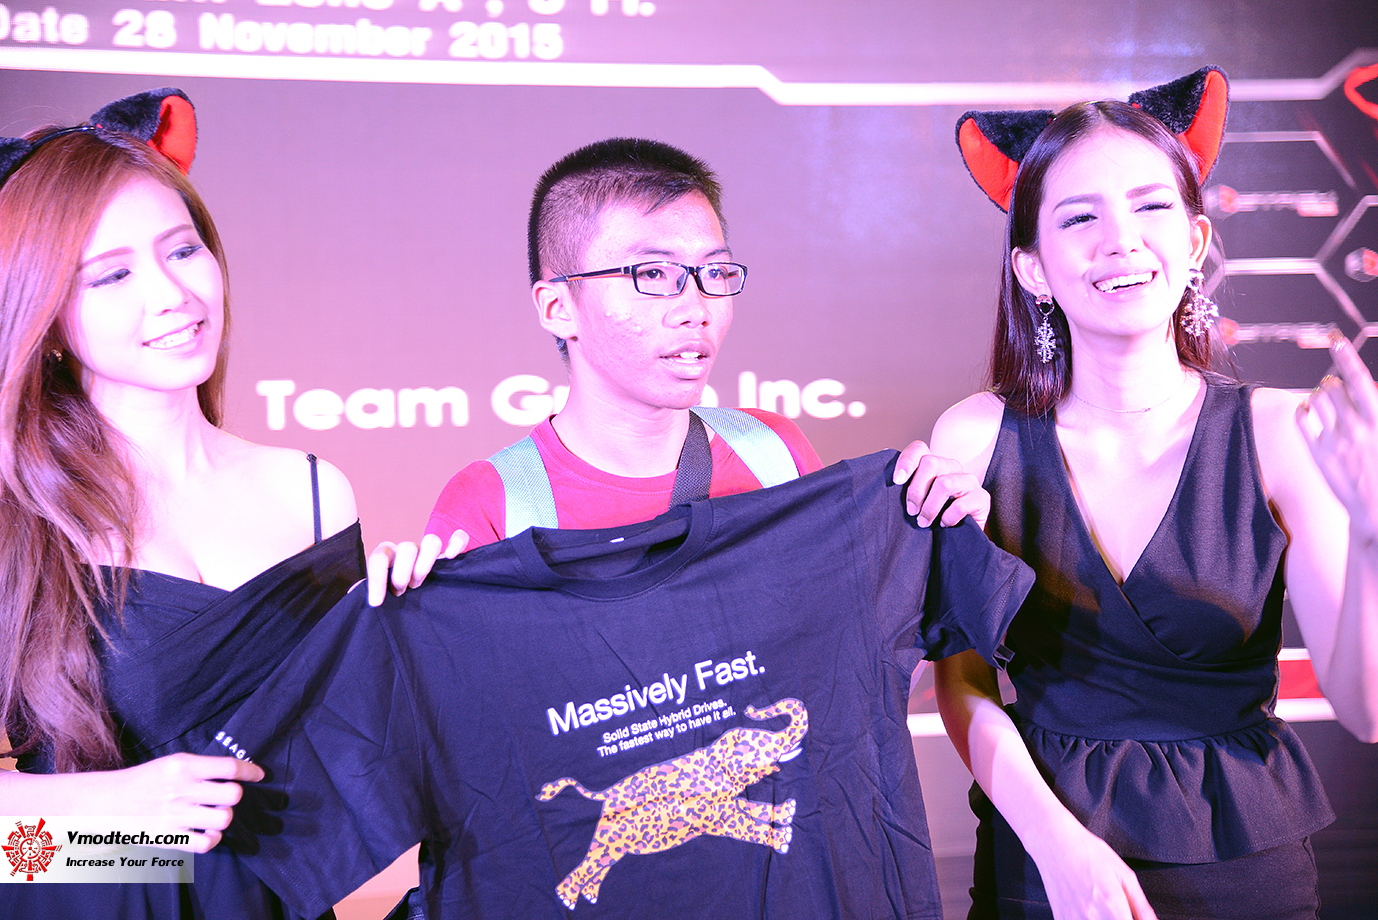 dsc 6941 AMD OMG! Party 2015 (AMD Overclock Modding Gaming Party 2015)